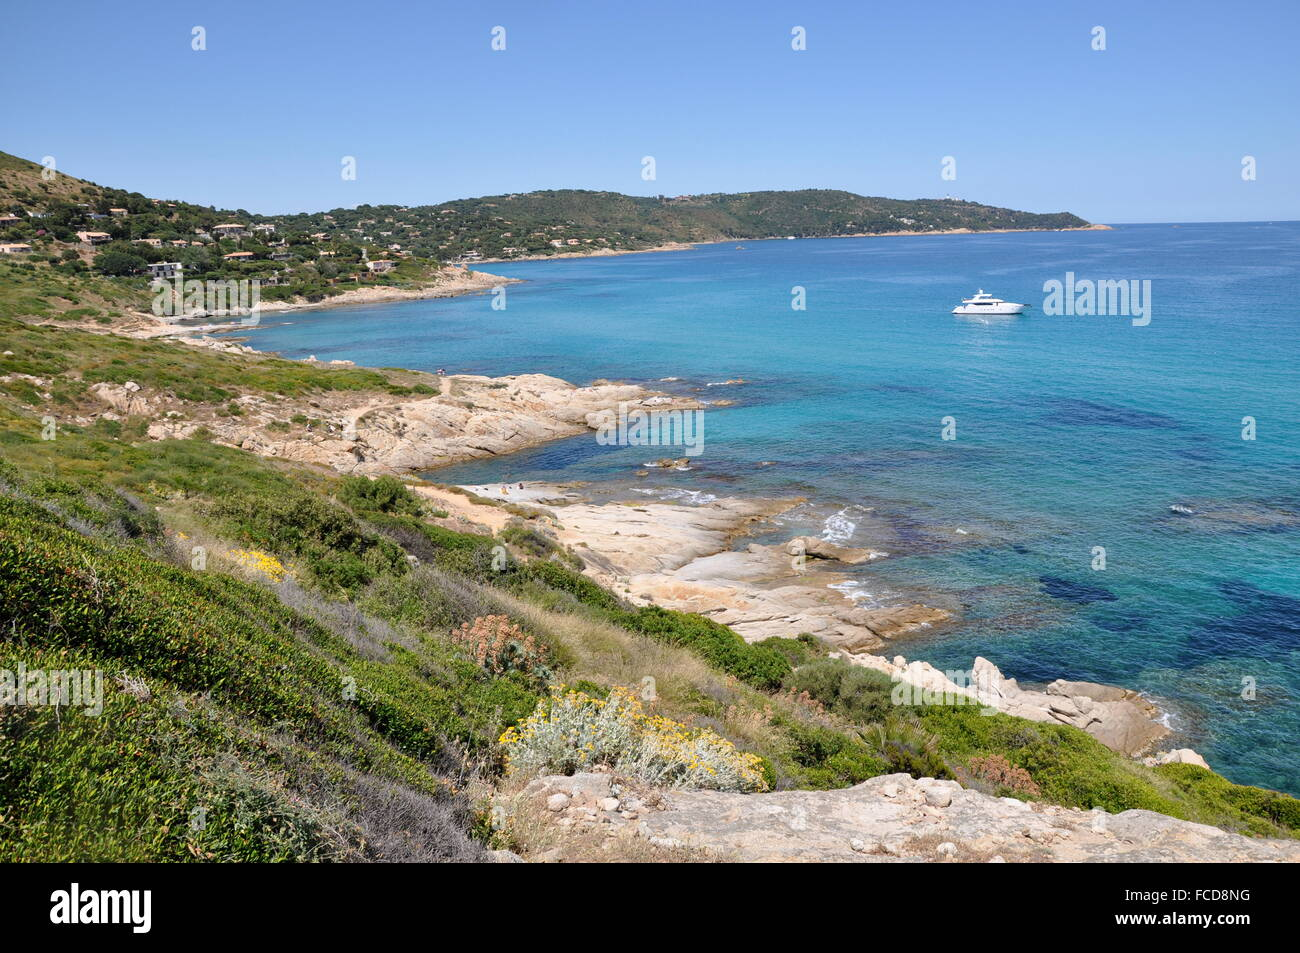 View Of Yacht Anchored Next To Shore - Stock Image